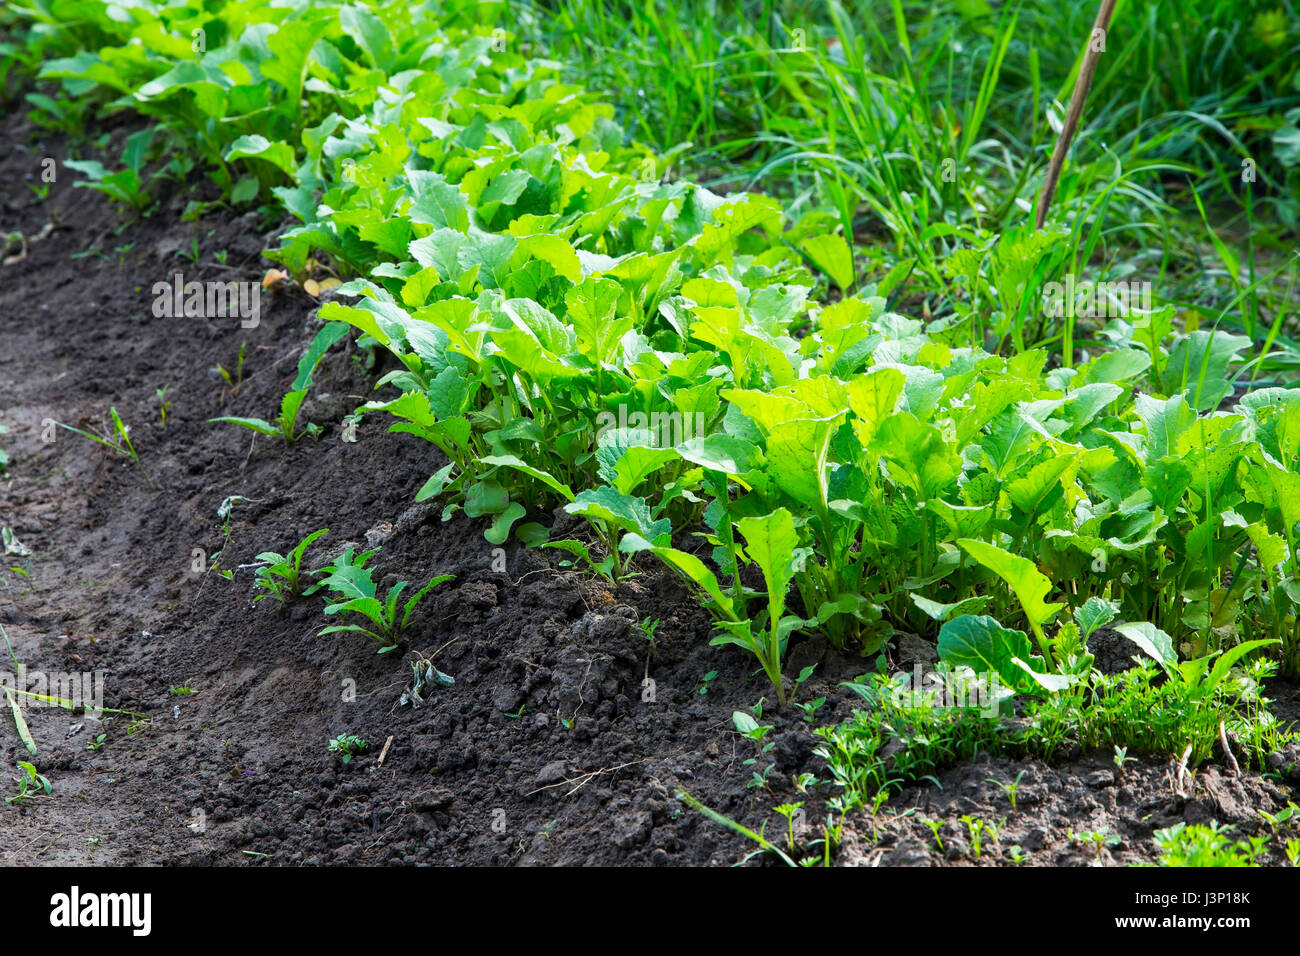 Young radish harvest row in the garden, green young leaves of radishes harvest growing in organic vegetables garden Stock Photo